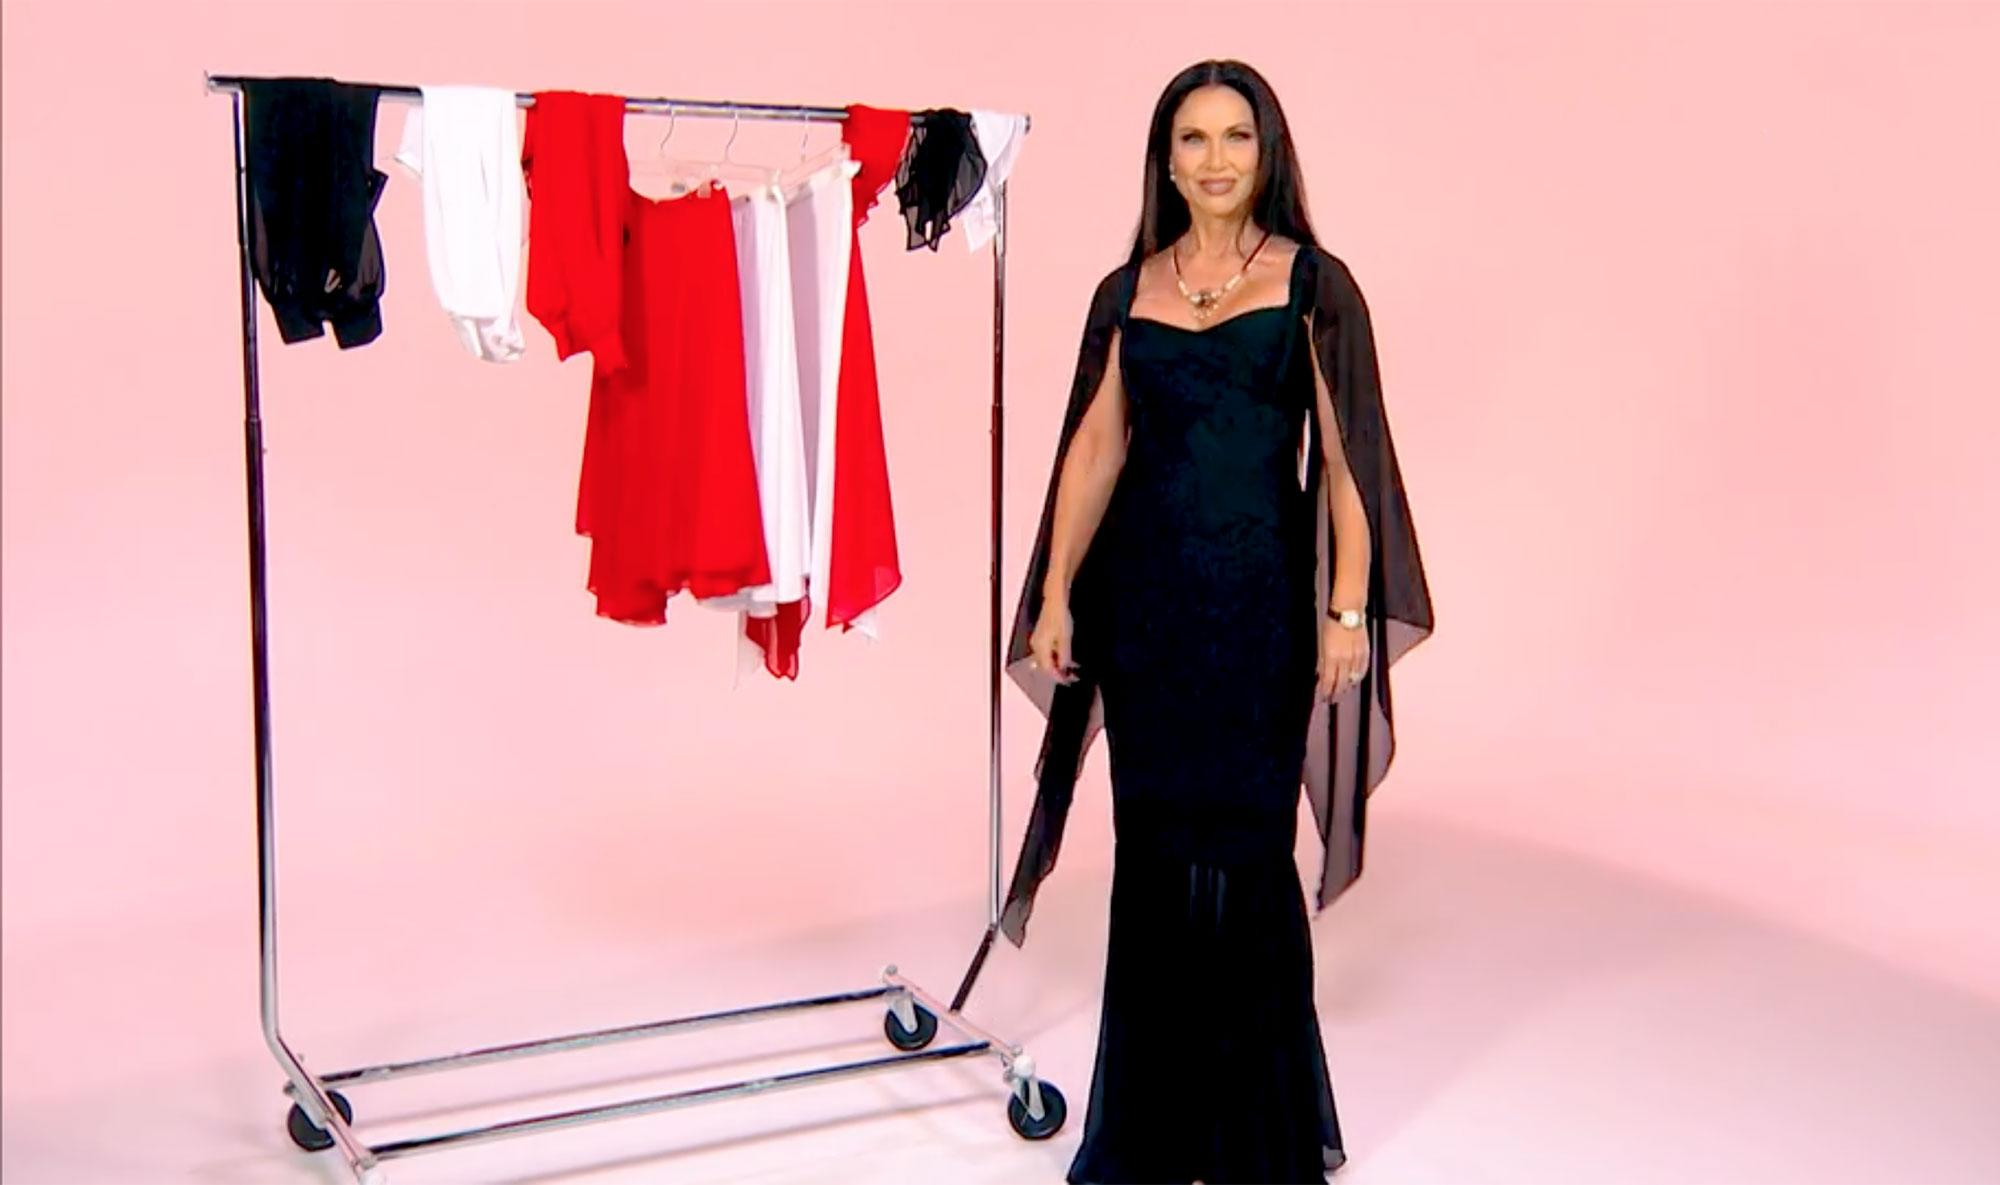 587c67fe020c2 Real Housewives of Dallas' LeeAnne Locken Made a Dress That Can Be Worn 175  Ways — Watch Her Model It